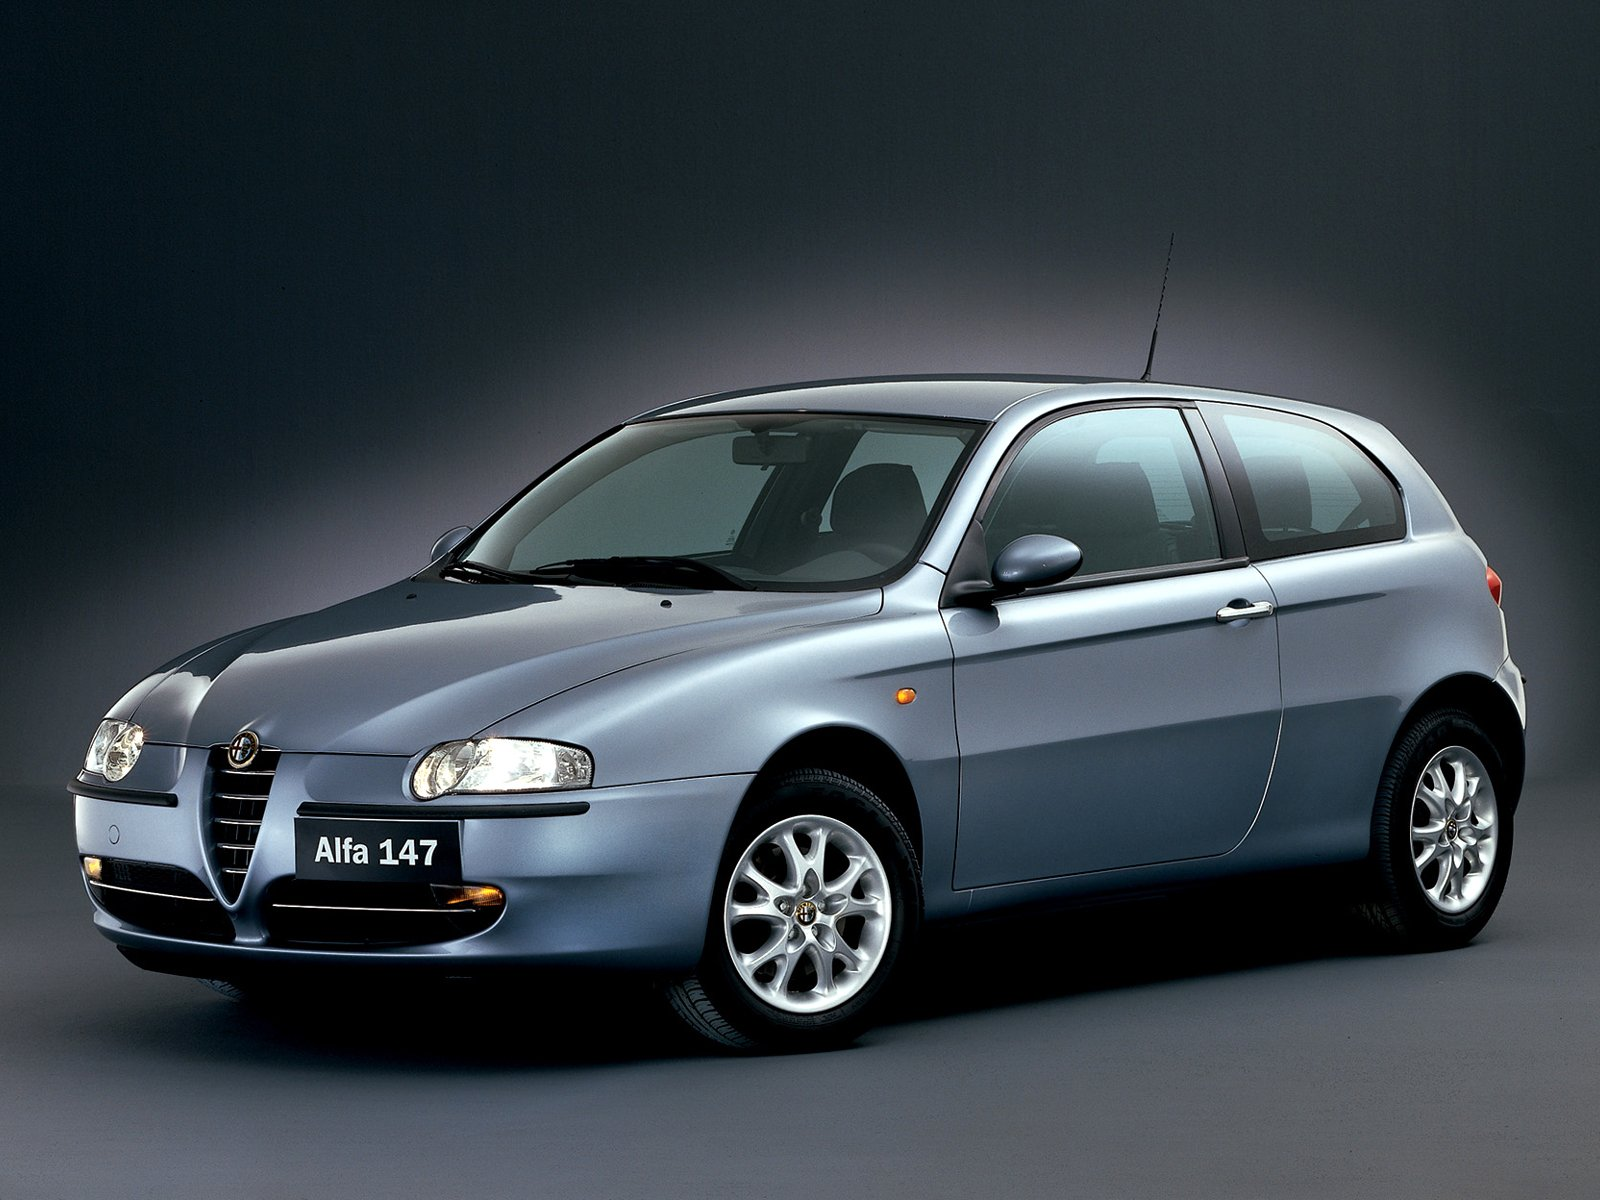 alfa romeo 147 photos photogallery with 59 pics. Black Bedroom Furniture Sets. Home Design Ideas